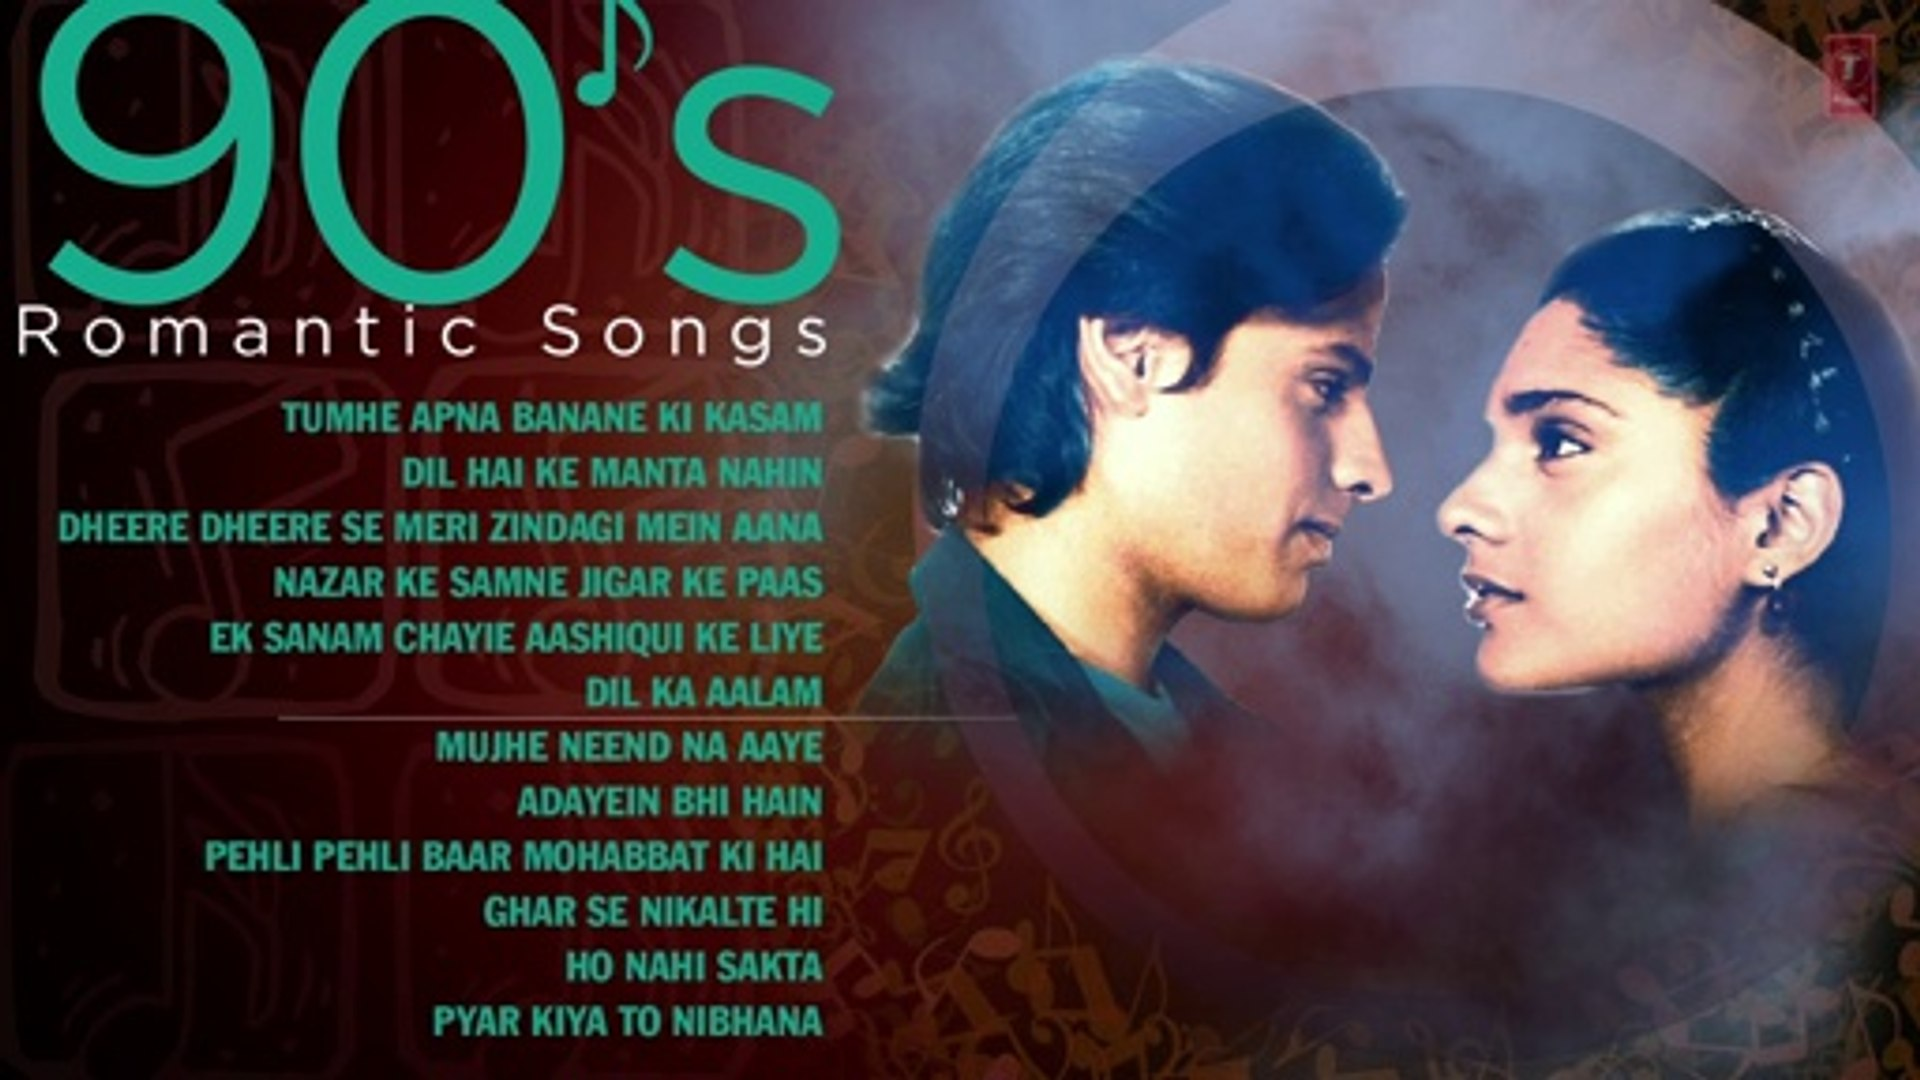 Official 90 S Romantic Songs Bollywood Romantic Songs Video Dailymotion .shreya ghoshal hindi romantic songs 2021 january latest indian songs 2020 december. official 90 s romantic songs bollywood romantic songs